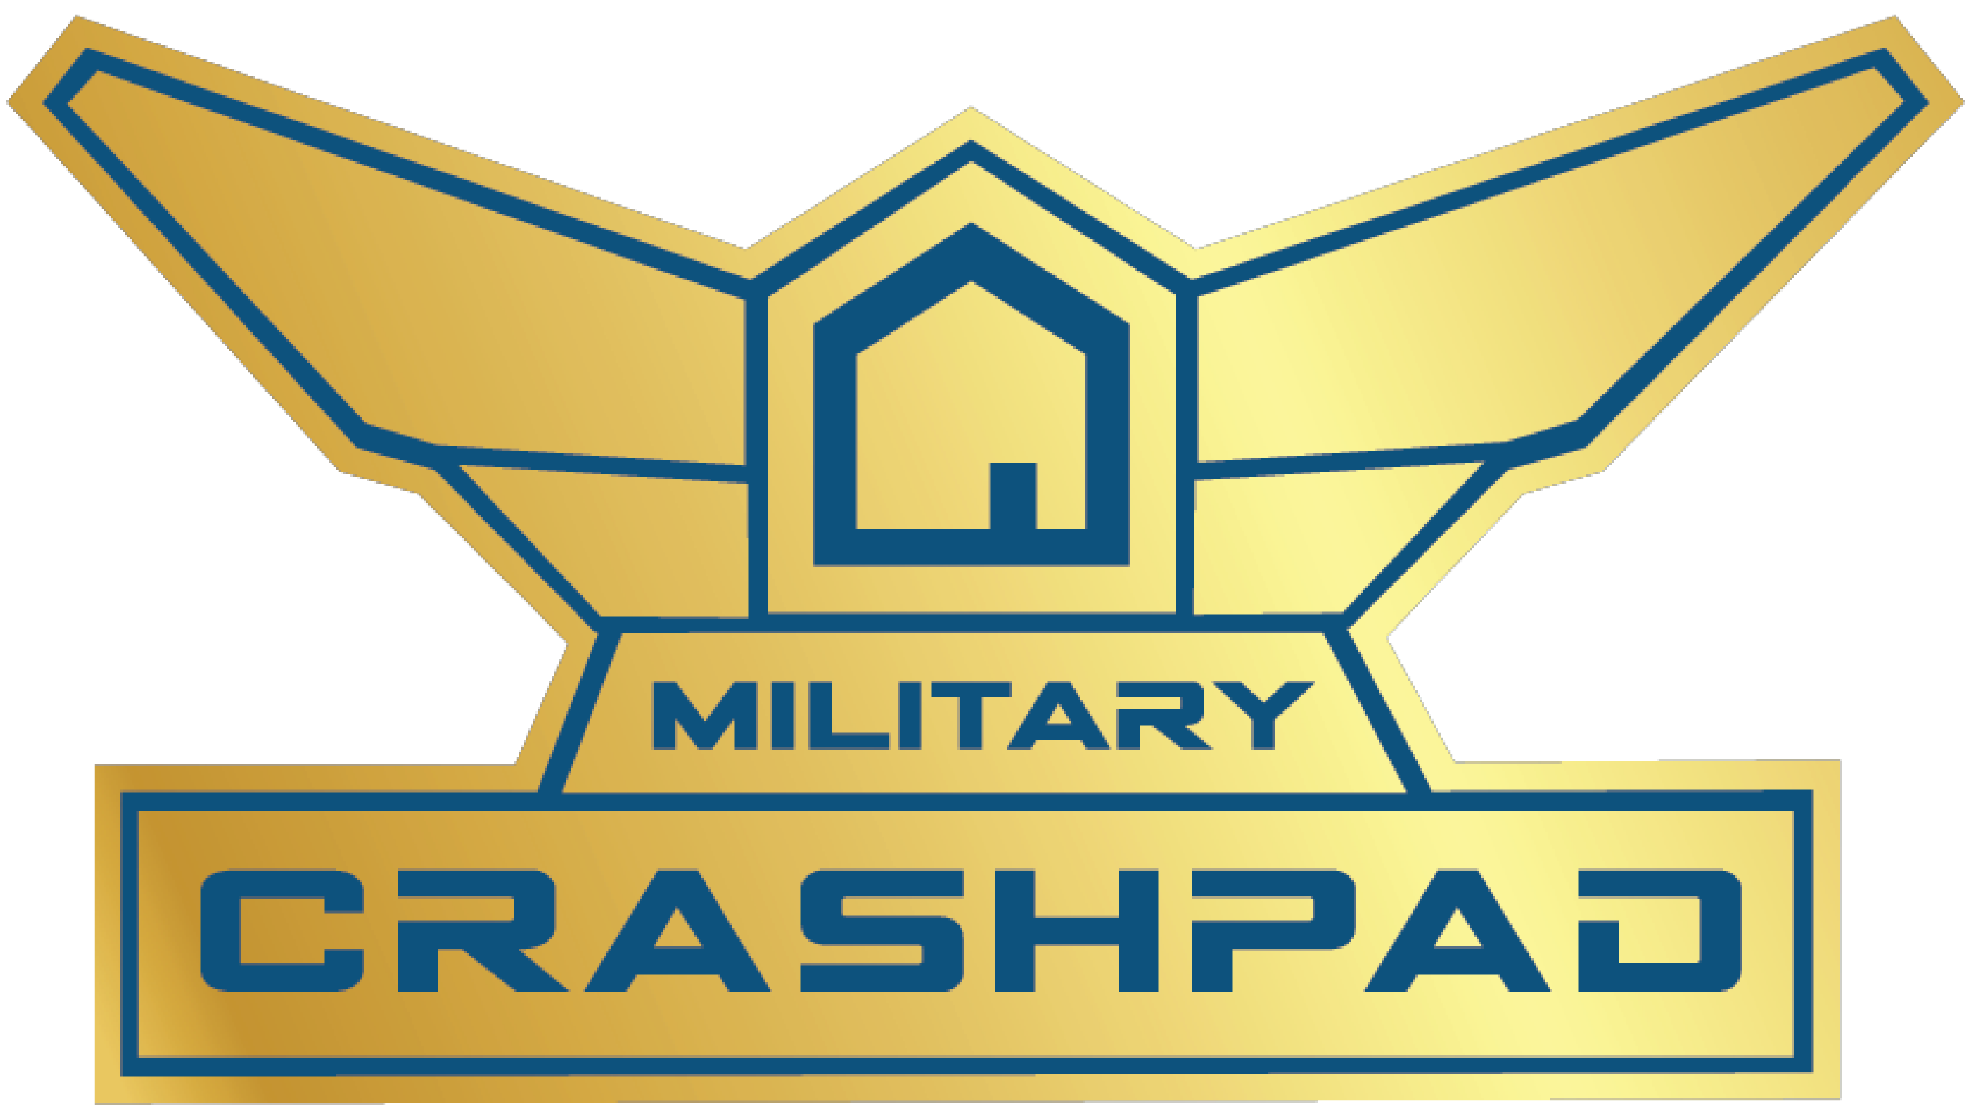 How to get the most out of mint military crashpad military crashpad biocorpaavc